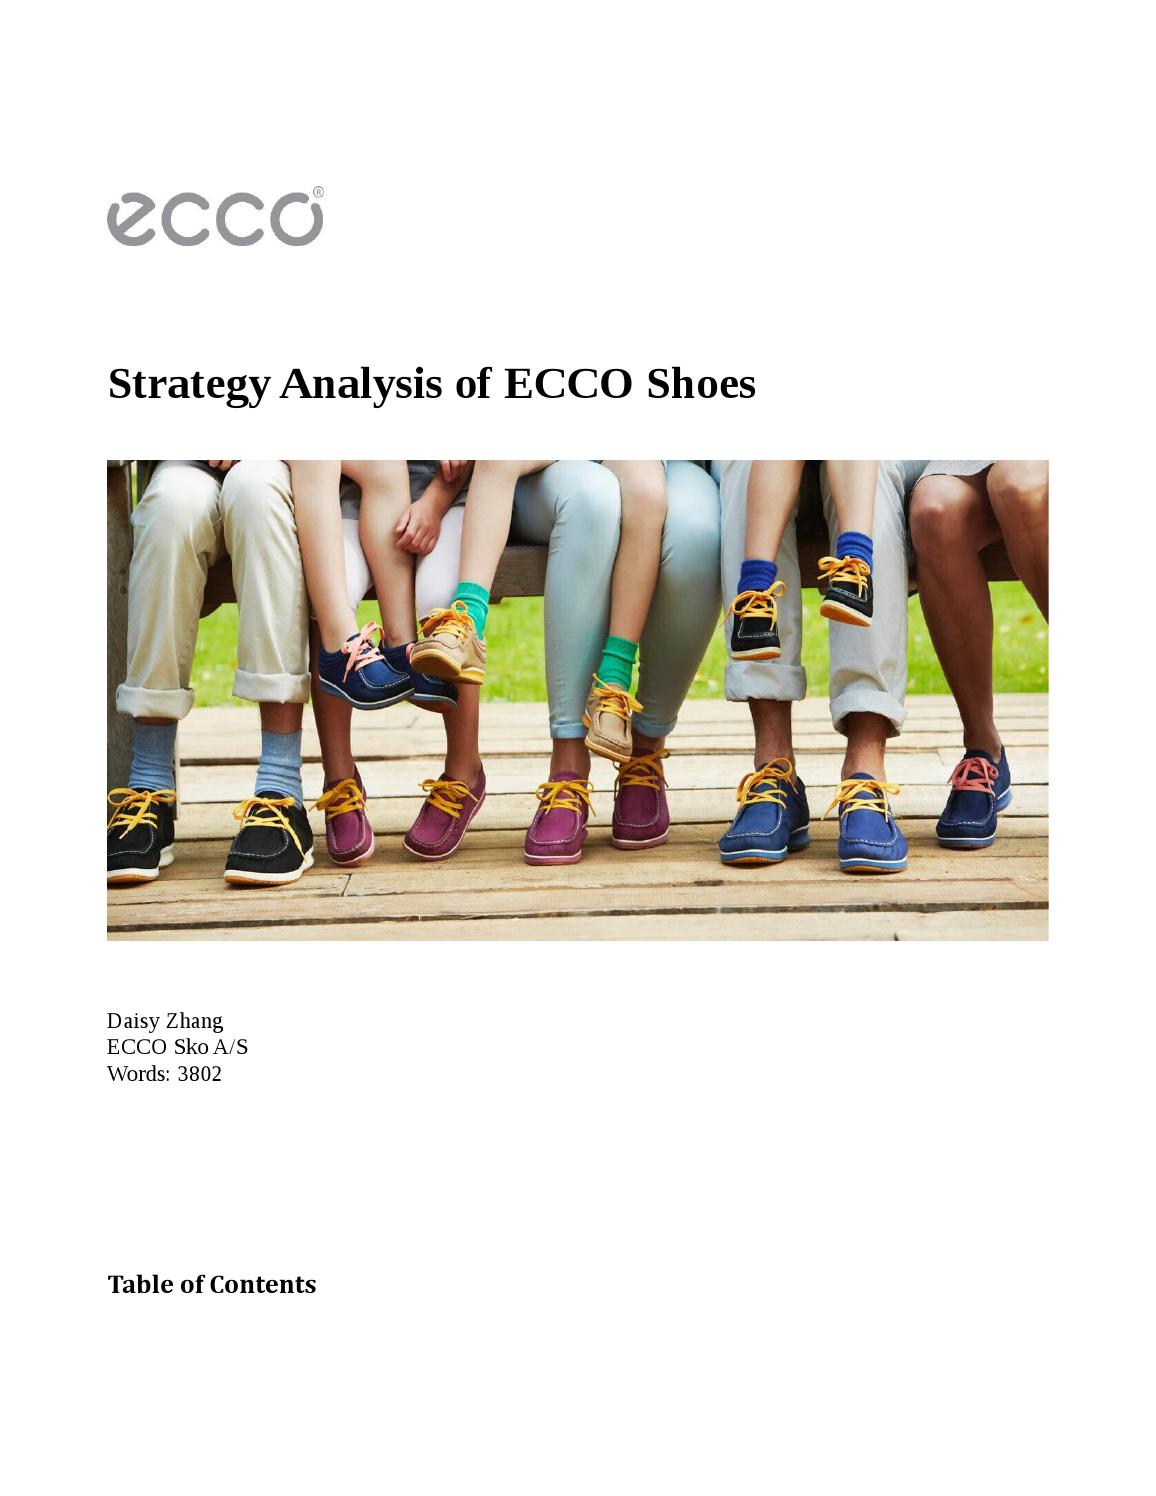 ecco market strategy Ecco sko a/s is a danish shoe manufacturer and retailer founded in 1963 by karl toosbuy, in bredebro, denmark the company began with only the production of footwear.